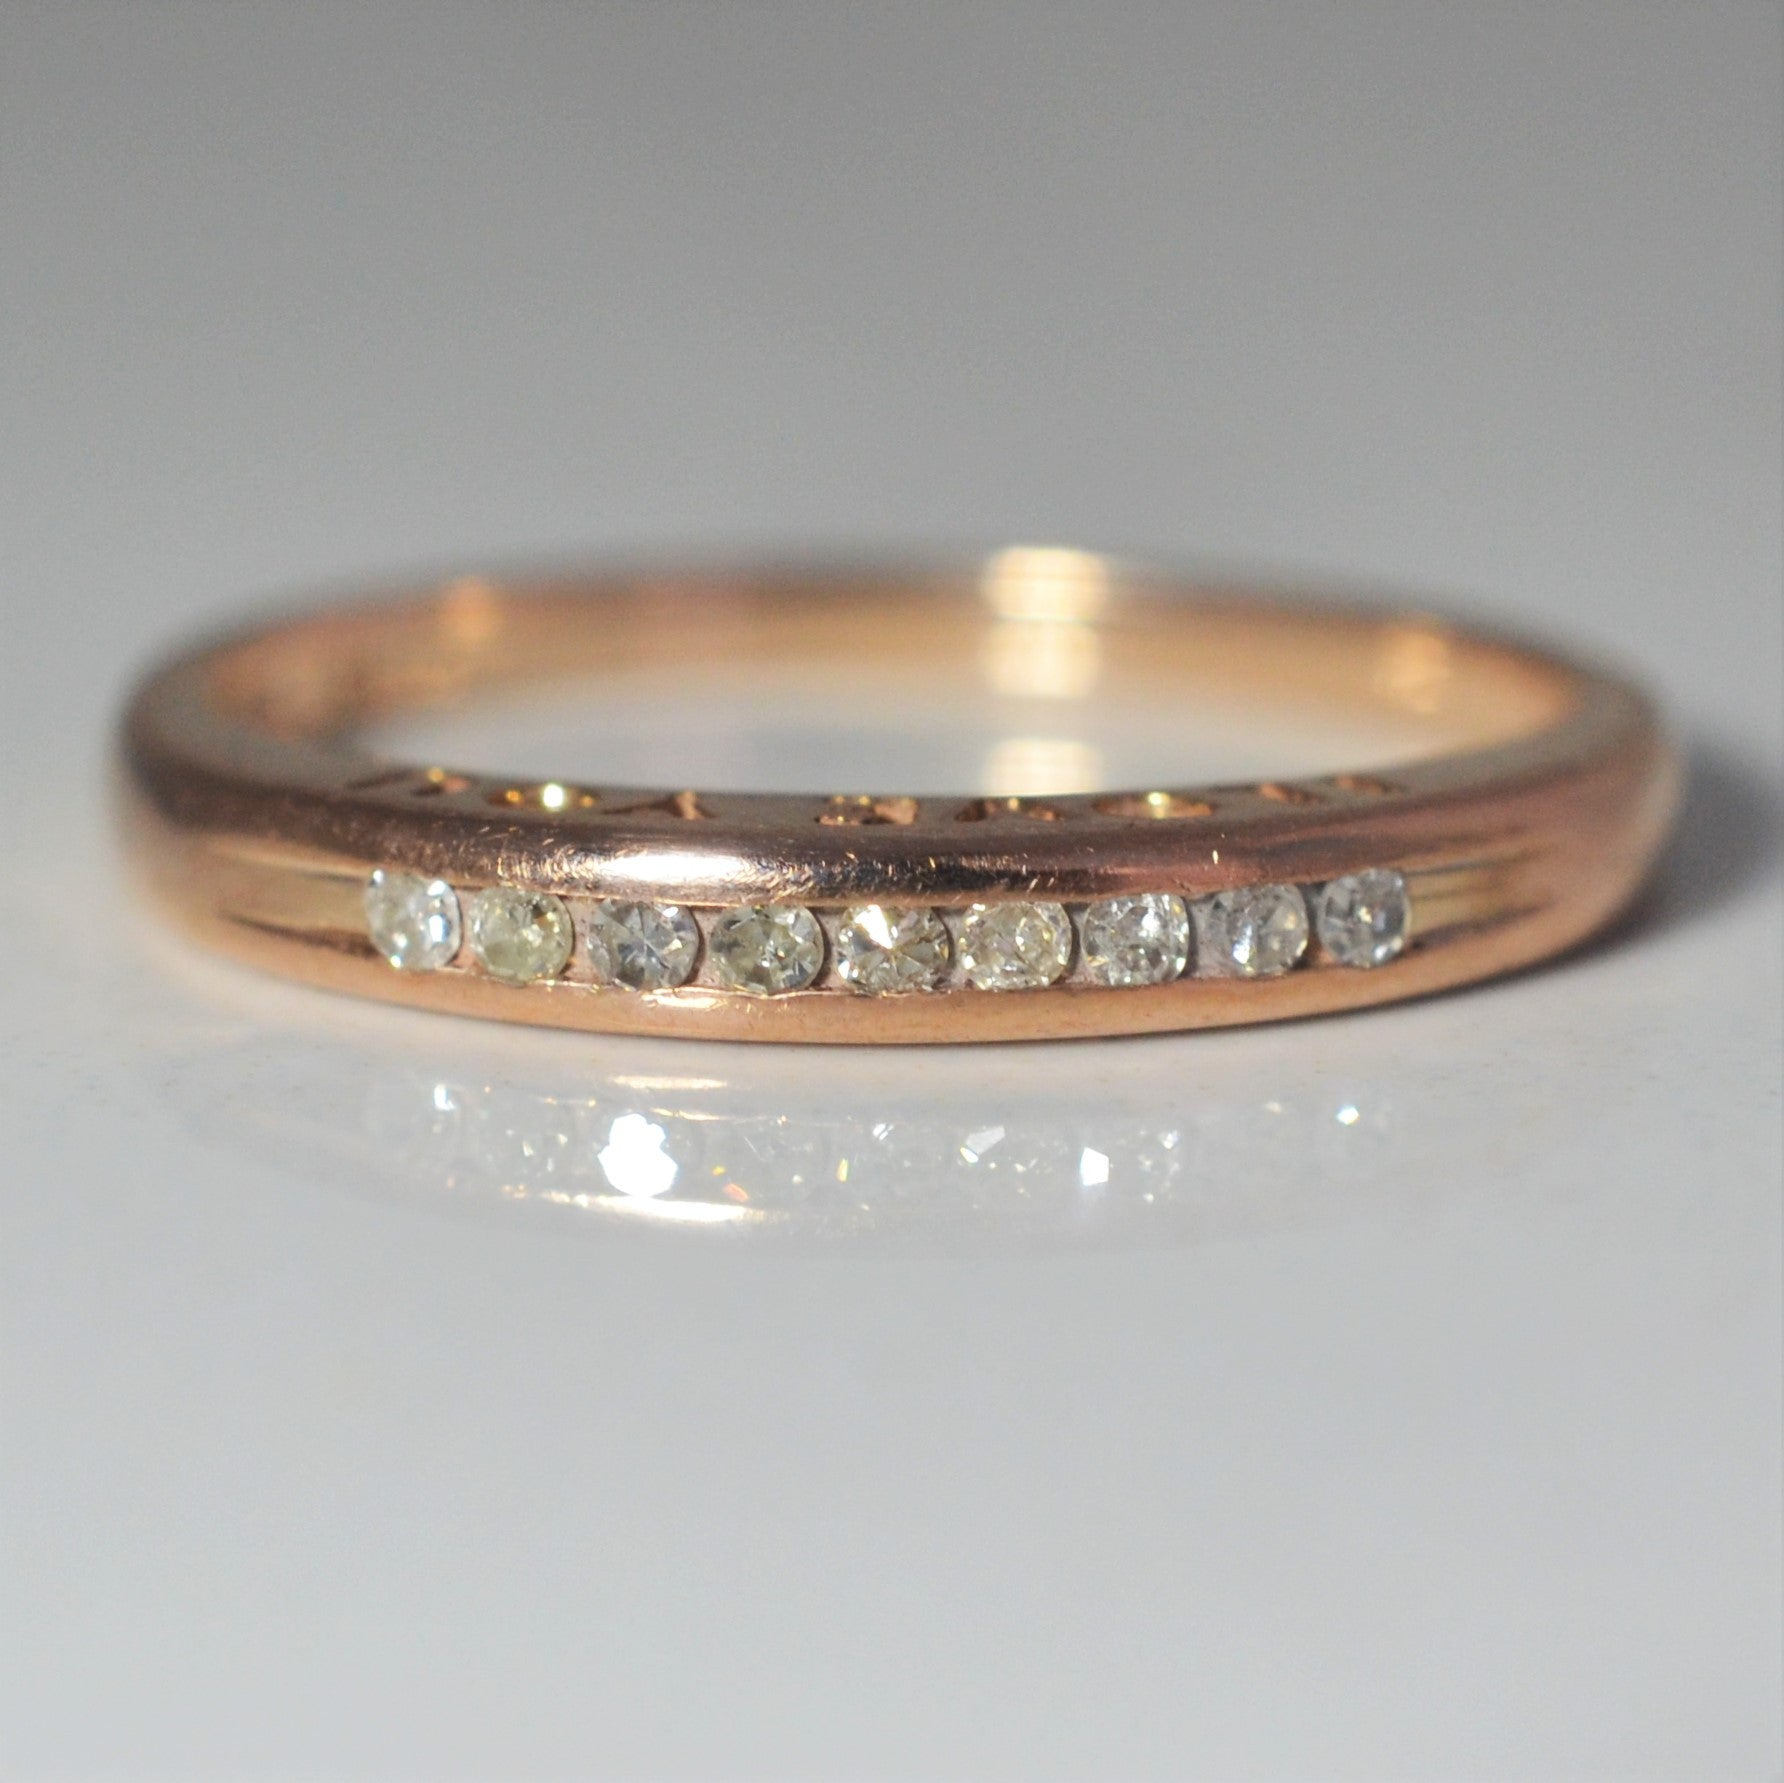 gold ed cobblestone co fit rings jewelry tiffany rose bands in ring wid id constrain m diamond hei band fmt